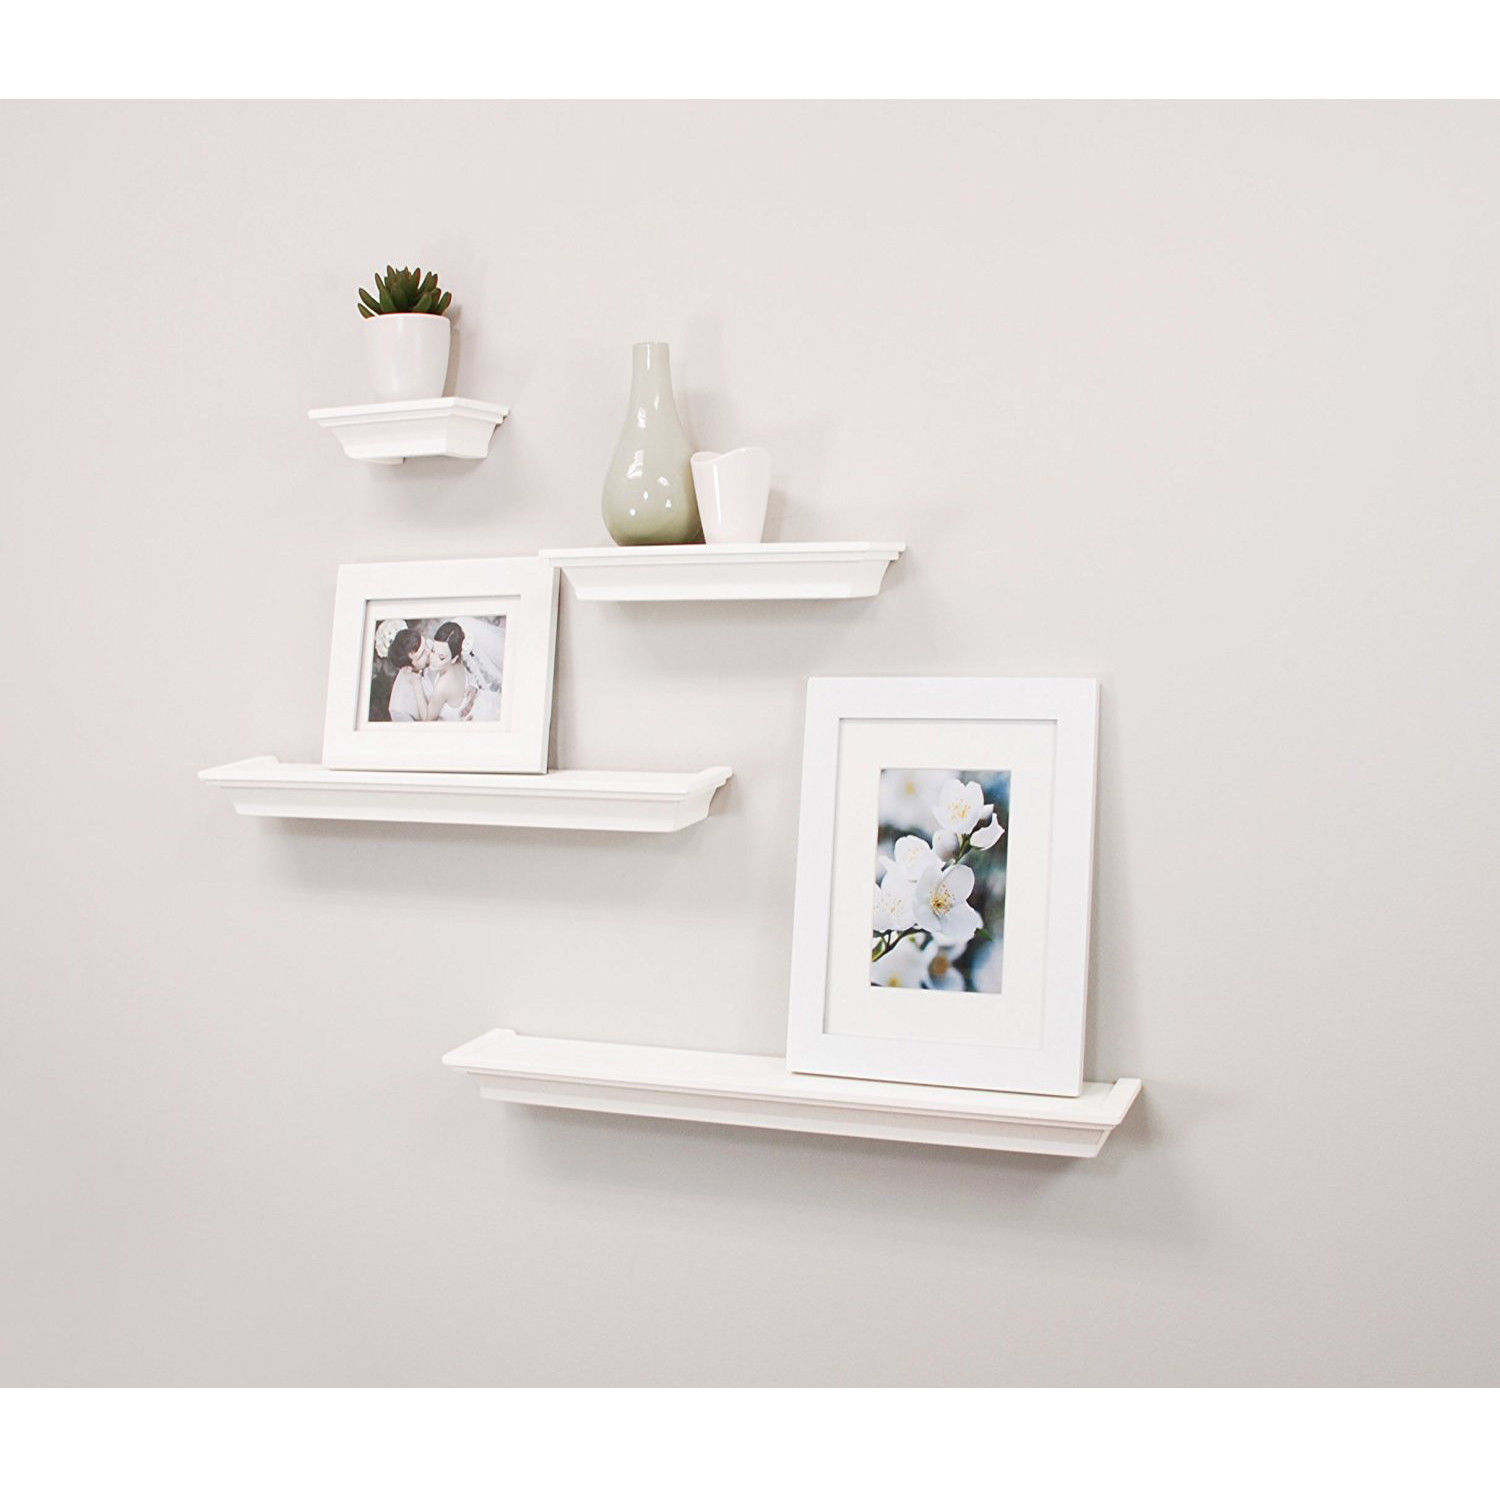 Us 26 79 4 Set Wall Mount Shelf Floating Display Home Decor Shelves Furniture White In Storage Holders Racks From Home Garden On Aliexpress